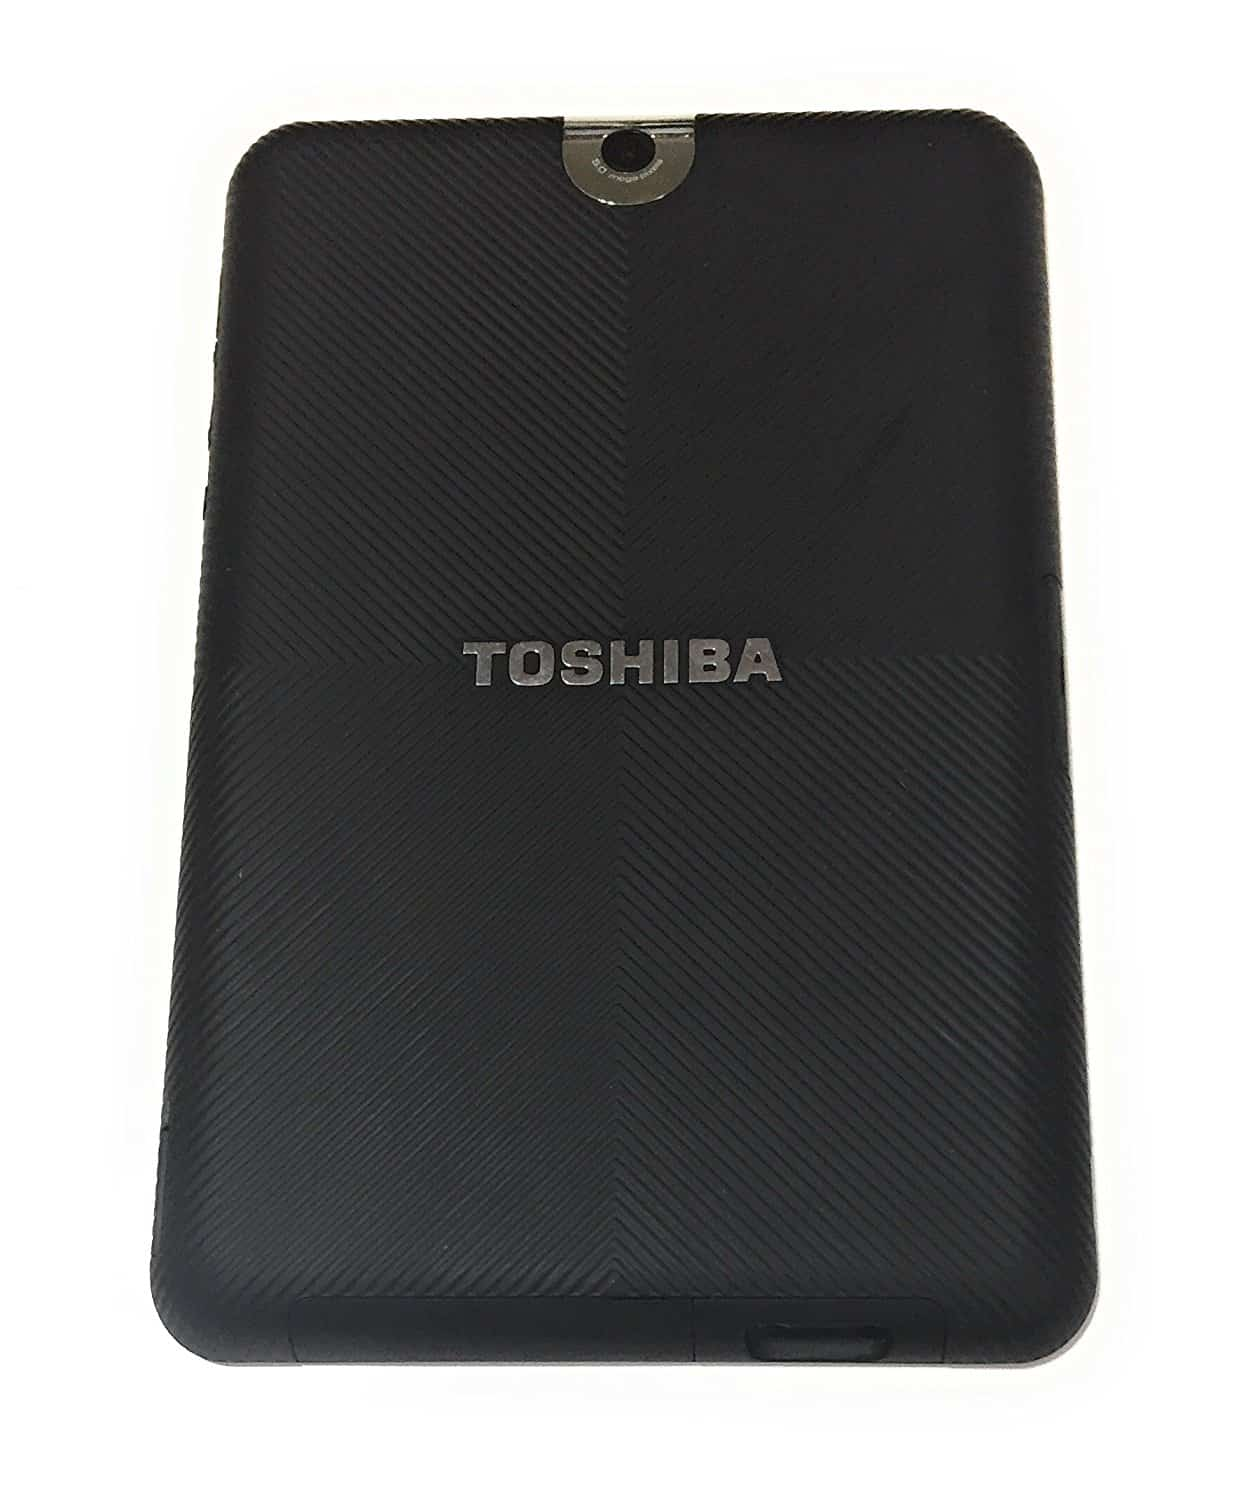 Toshiba Thrive 10 Tablet with USB port